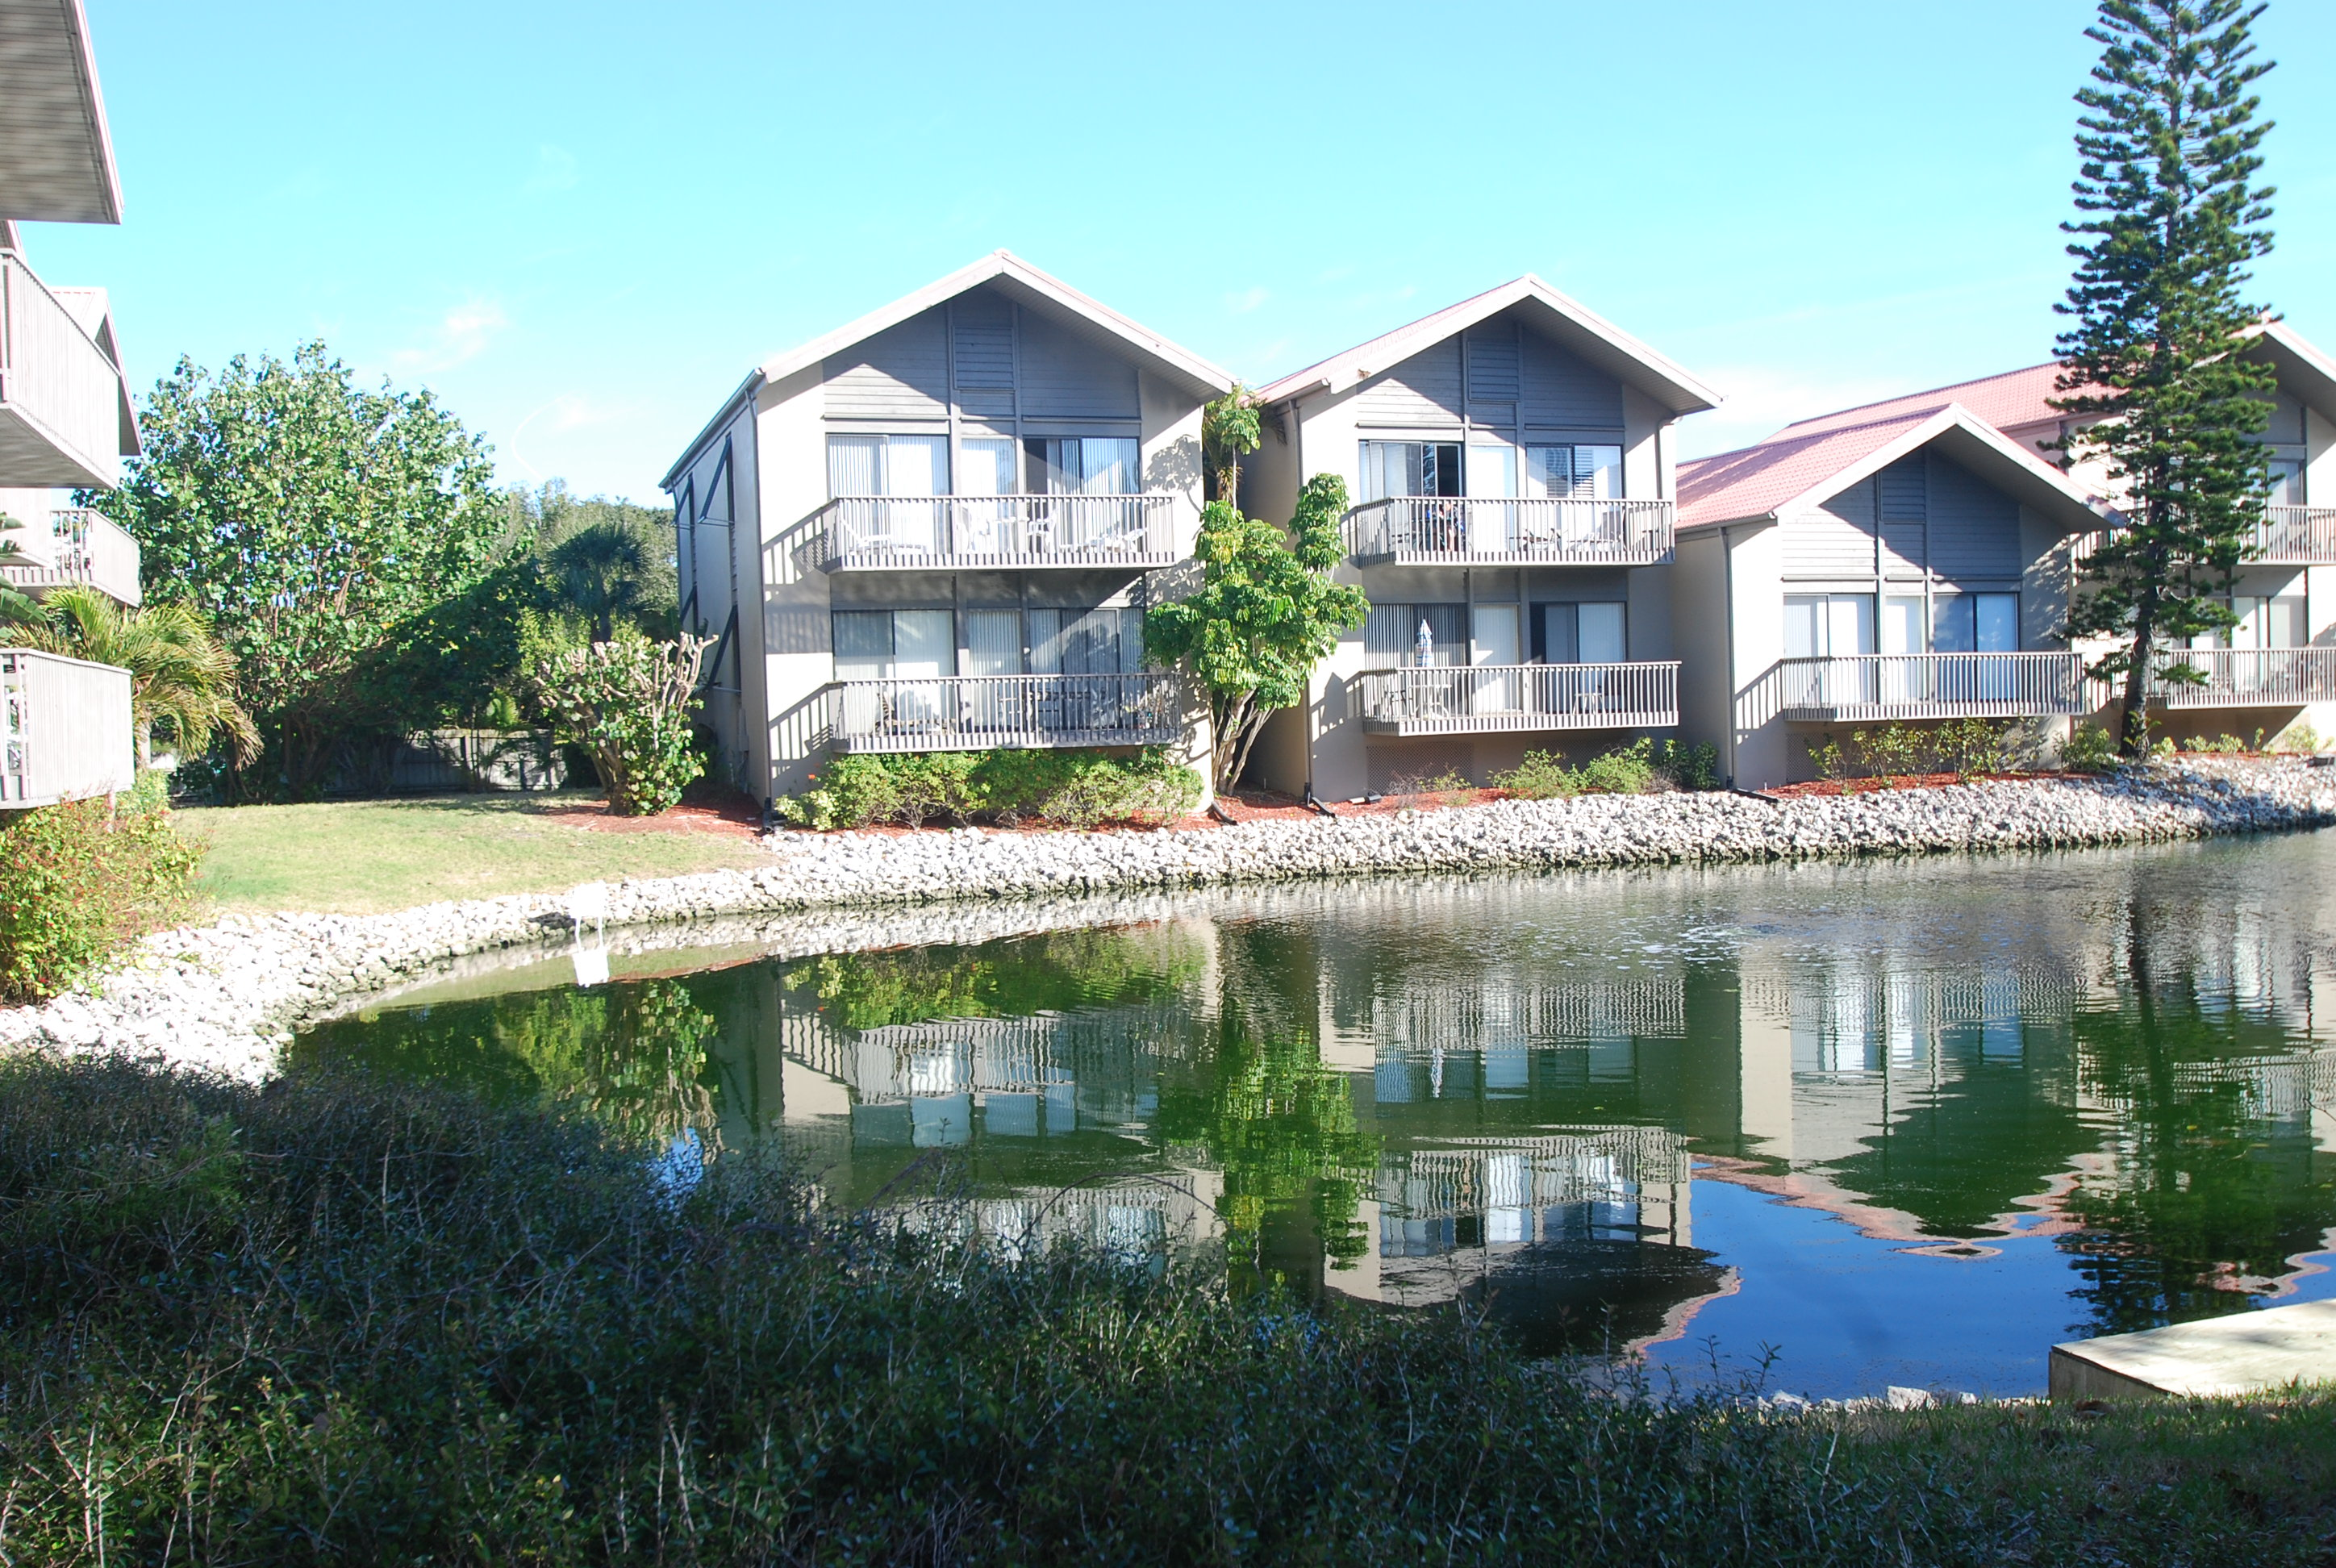 Cocoa beach vrbo florida gulf vacation fl beach rentals 2015 personal blog - Vacation houses at the seaside ...